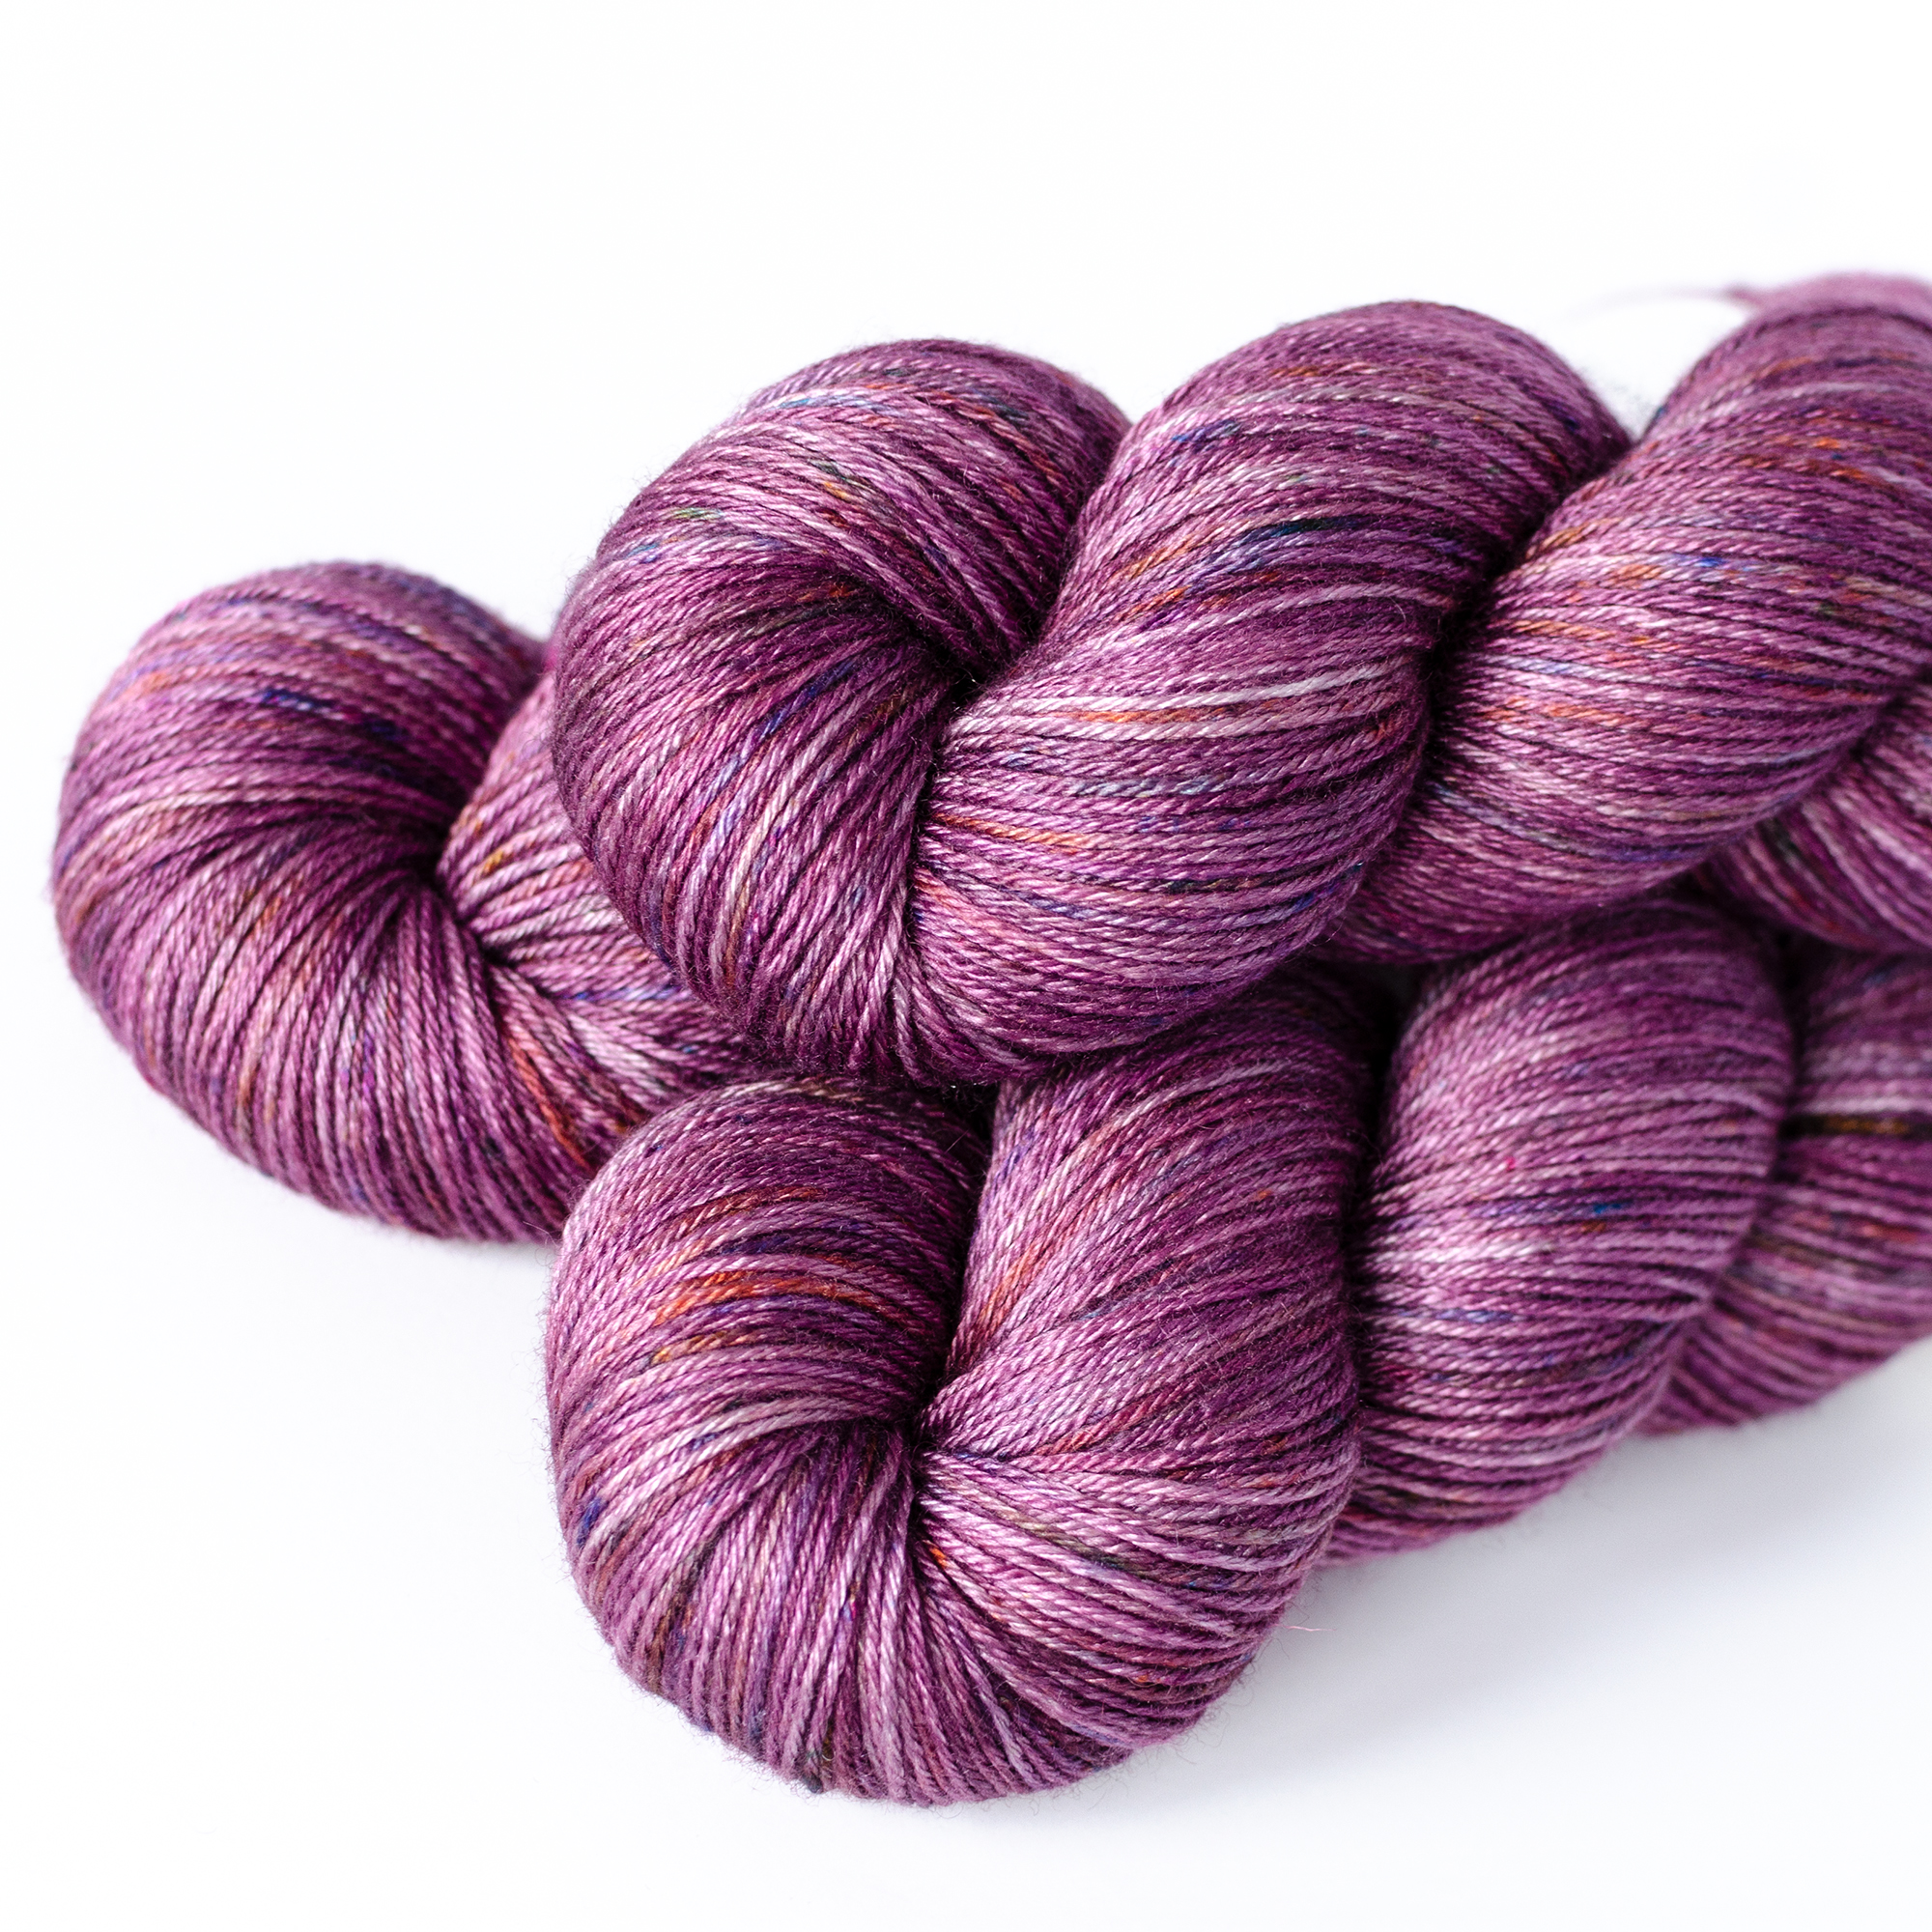 BFL/Silk Fingering - $32  55% SW British BFL Wool, 45% Silk  4 plies  435 yards / 398 meters  100 grams  Fingering Weight  US 1-5 / 2.25-3.75mm  Hand wash / Dry flat  This base is soft, smooth, and surprisingly lofty. It feels more airy than the merino version.